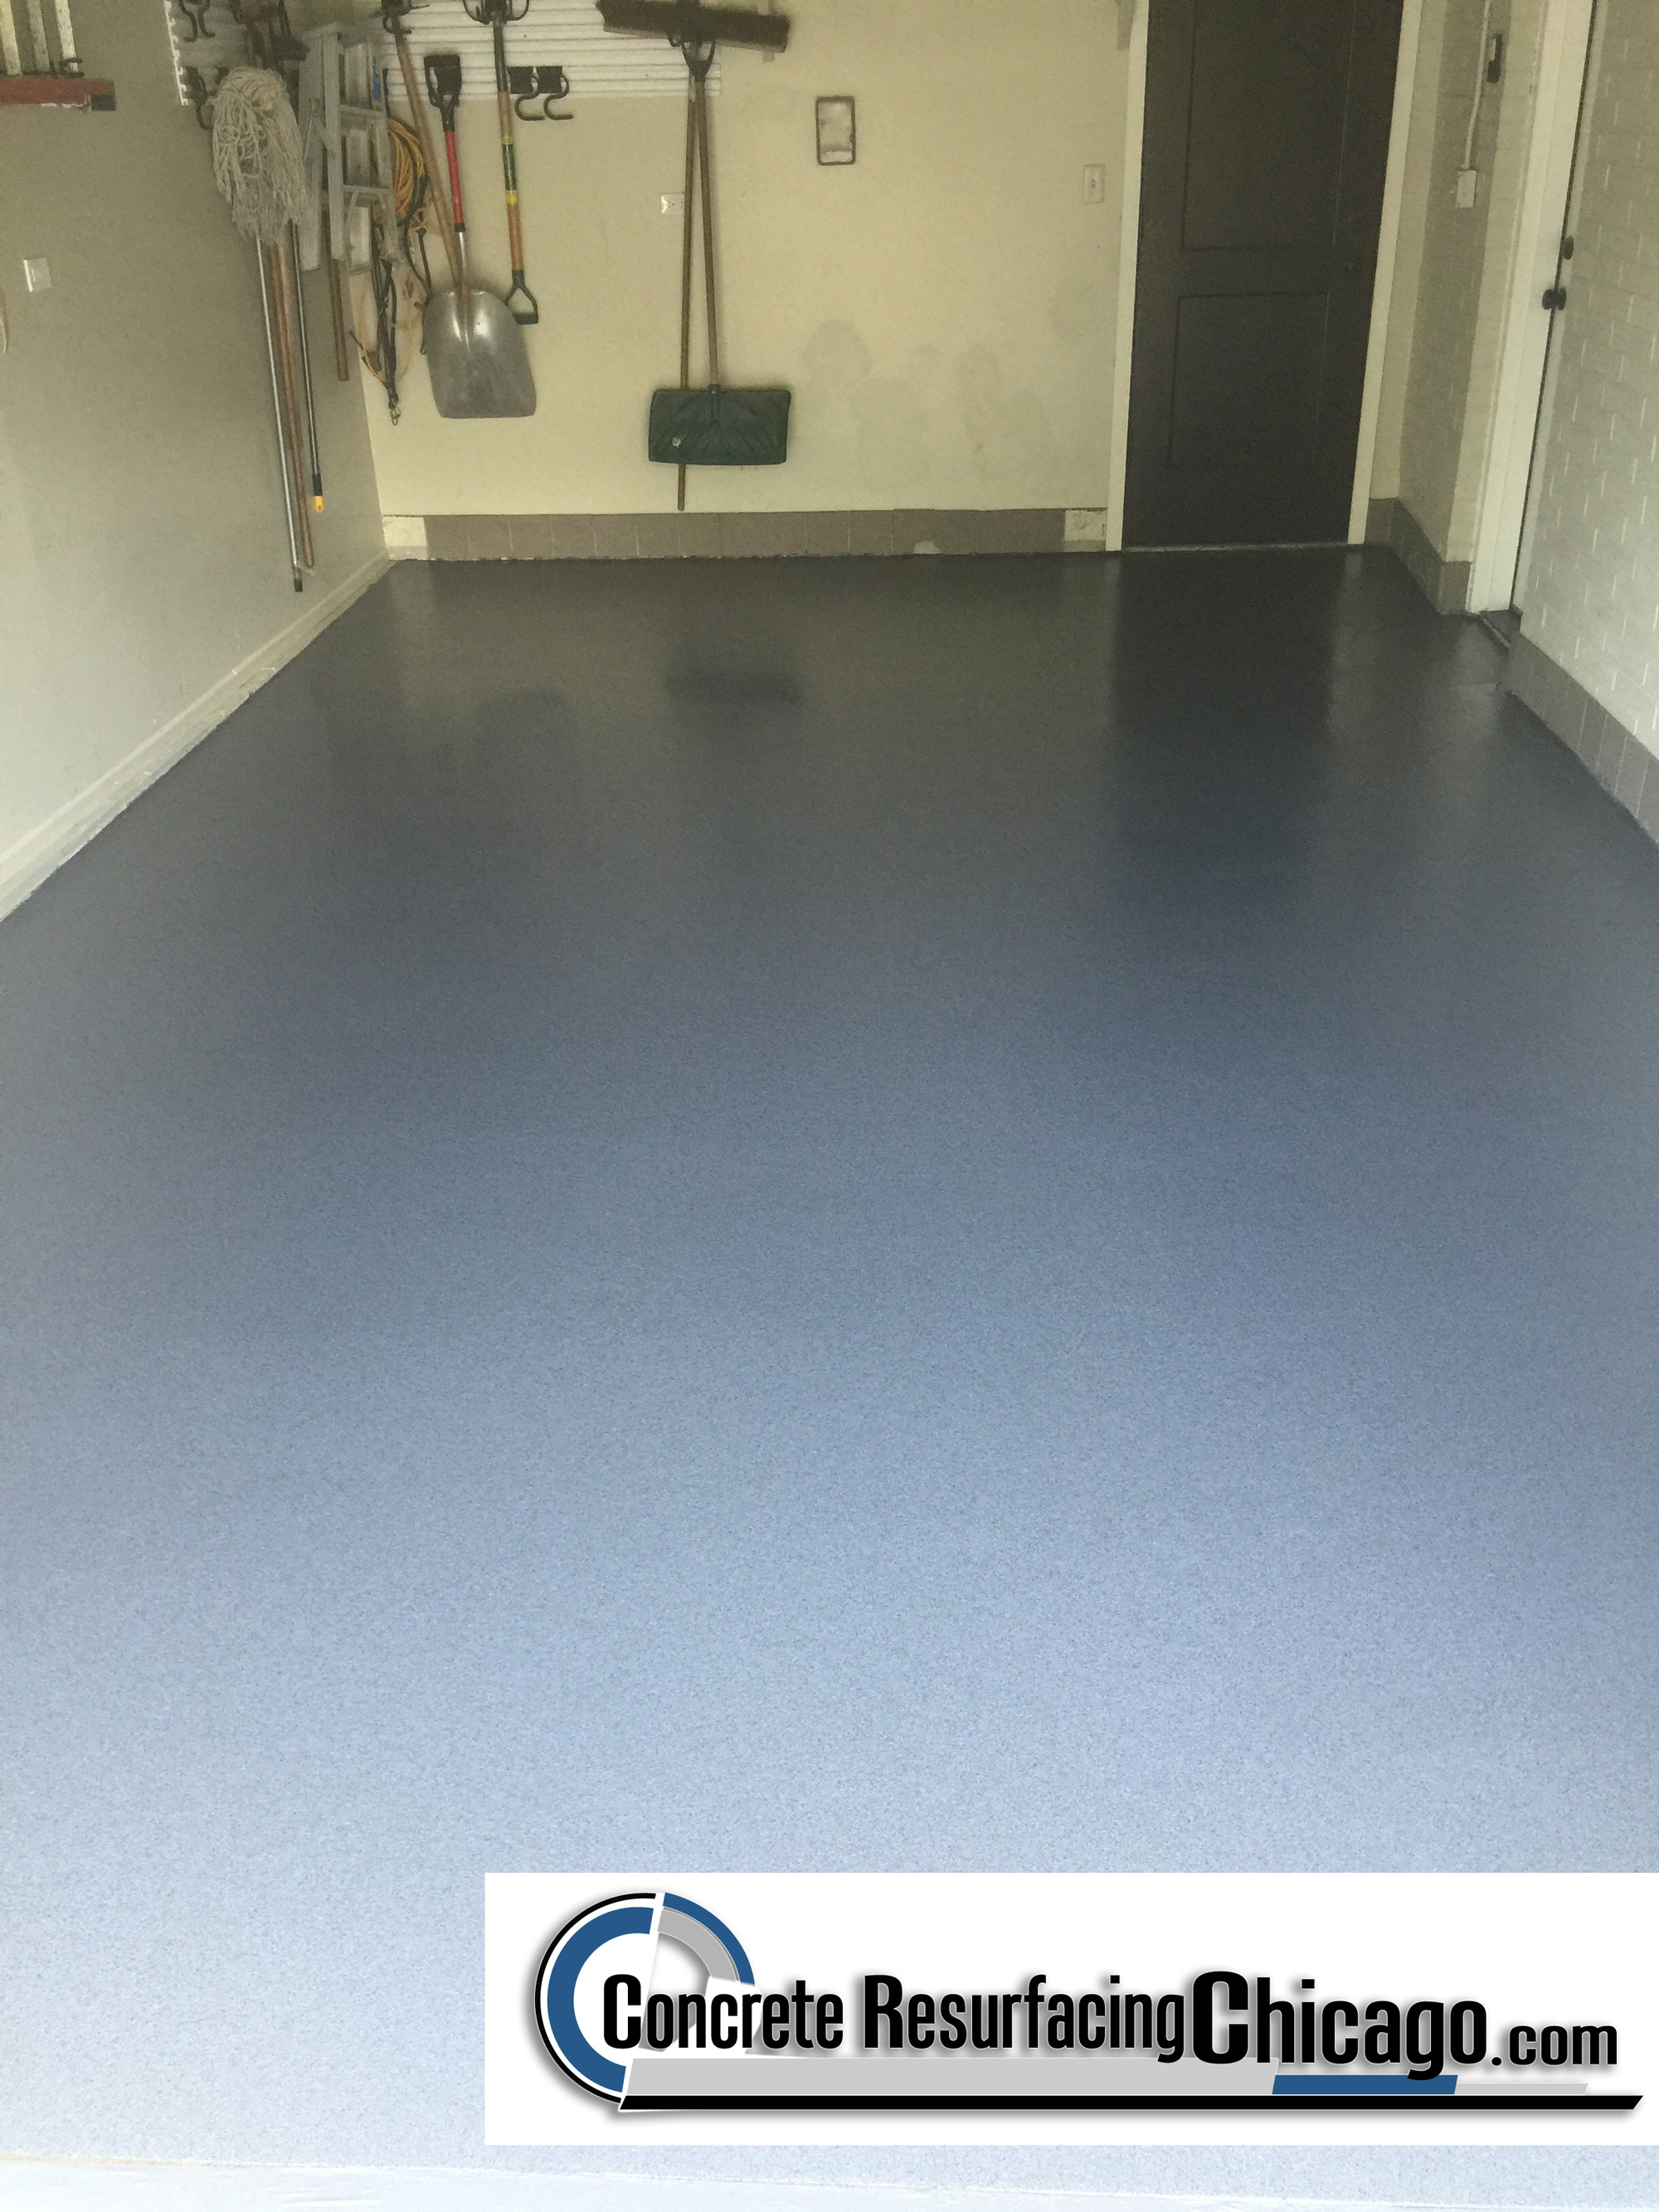 tred sani finishes coatings coating resurfacing floor garage